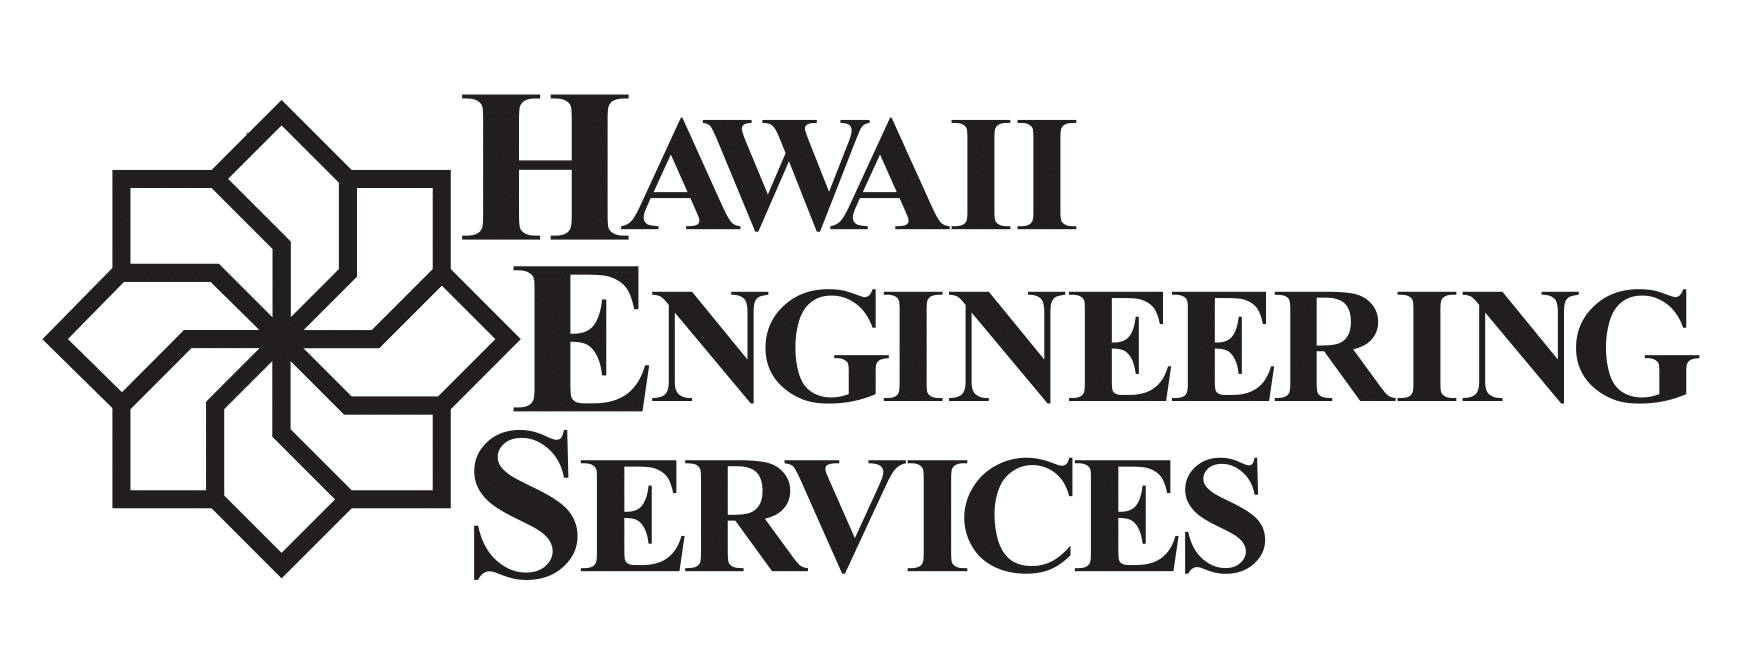 Hawaii Engineering Services, Inc